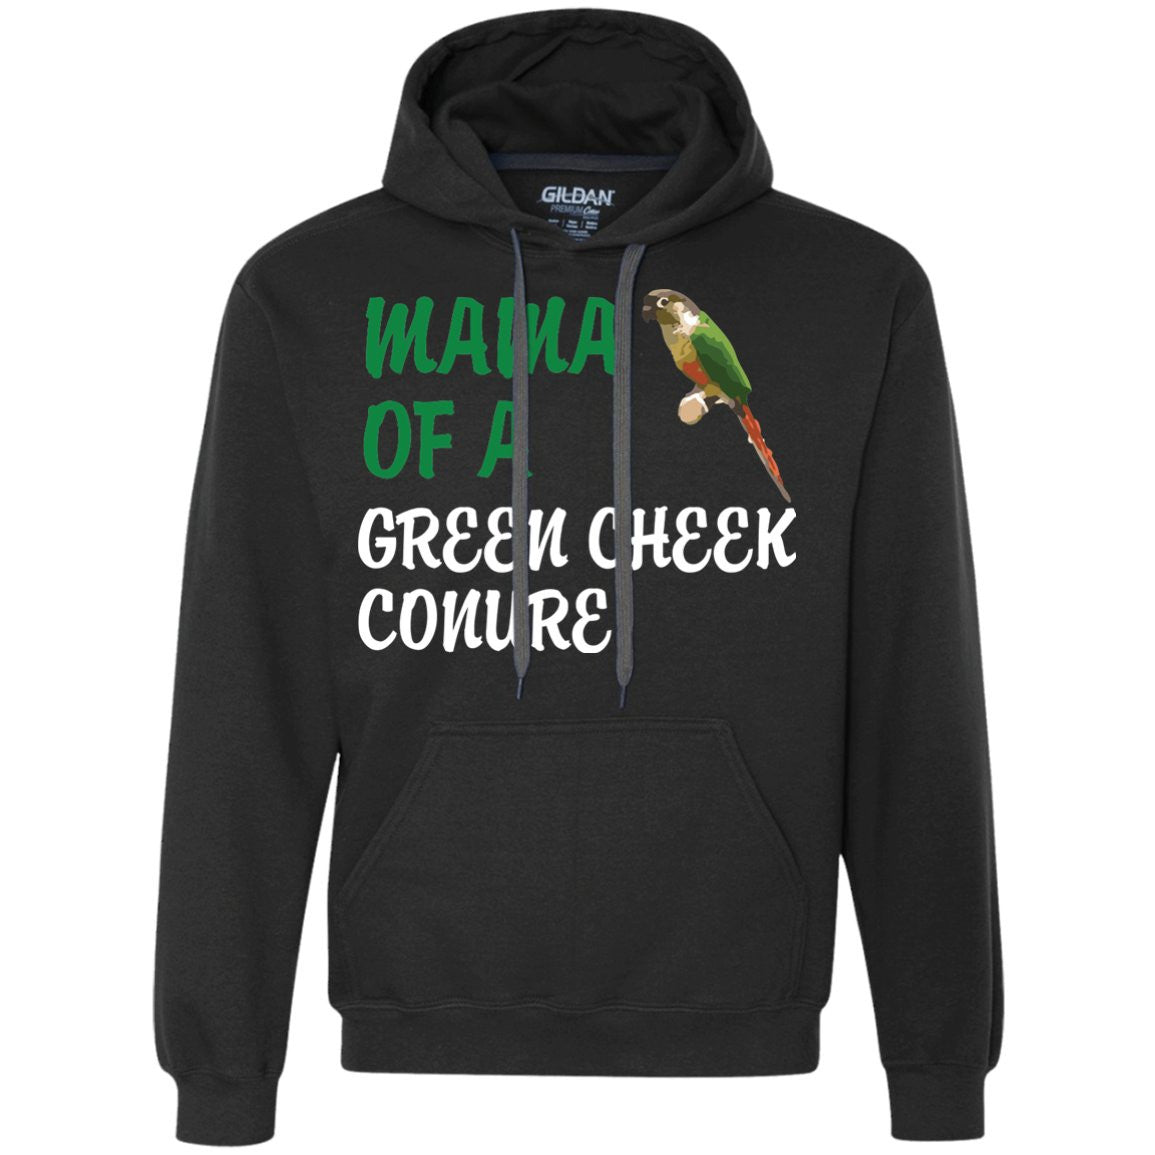 Mama of a Green Cheeked Conure - Funny Shirt  Heavyweight Pullover Fleece Sweatshirt